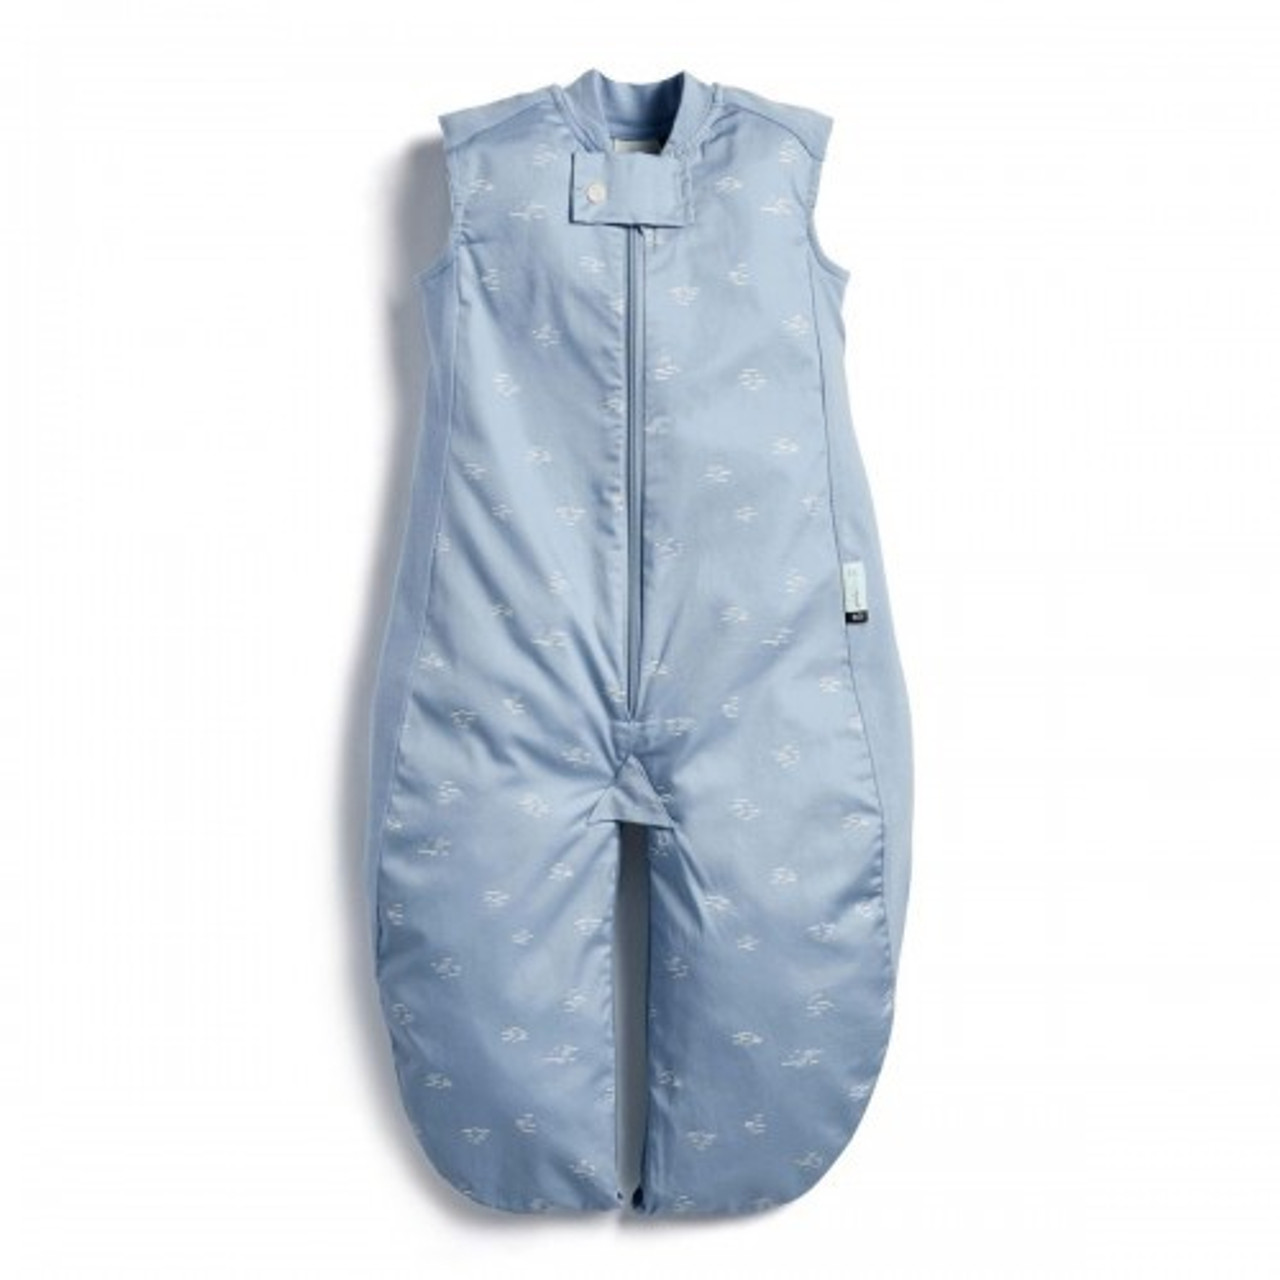 Ergopouch Sleep Suit Bag 0.3 Tog 3-12 Months RIPPLE at Baby Barn Discounts Ergopouch Sleep Suit Bag converts from a sleeping bag to a suit with legs using zippers.